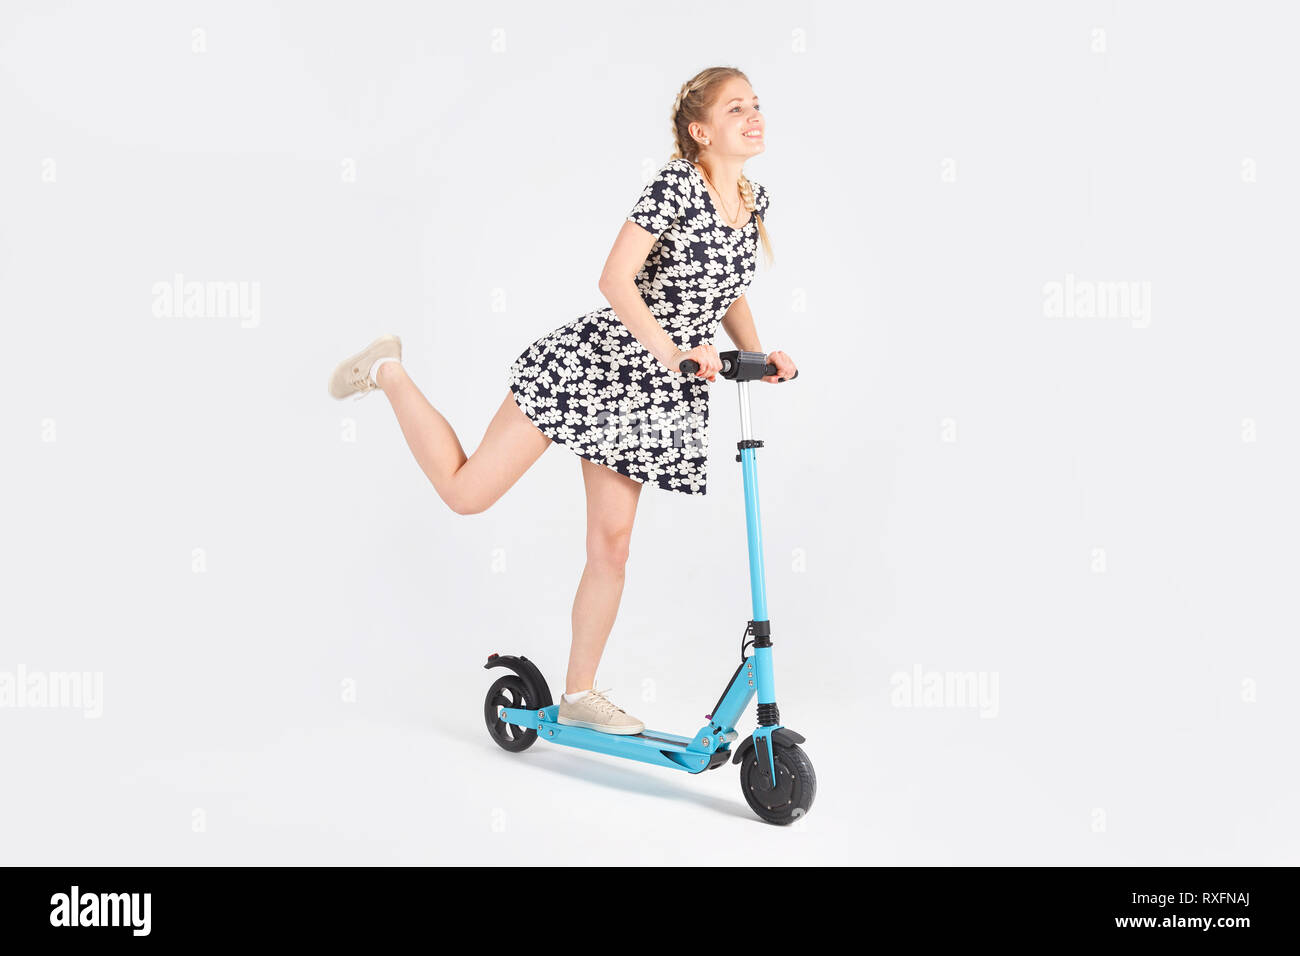 Beautiful woman in sundress ride a blue scooter on white isolated background. - Stock Image